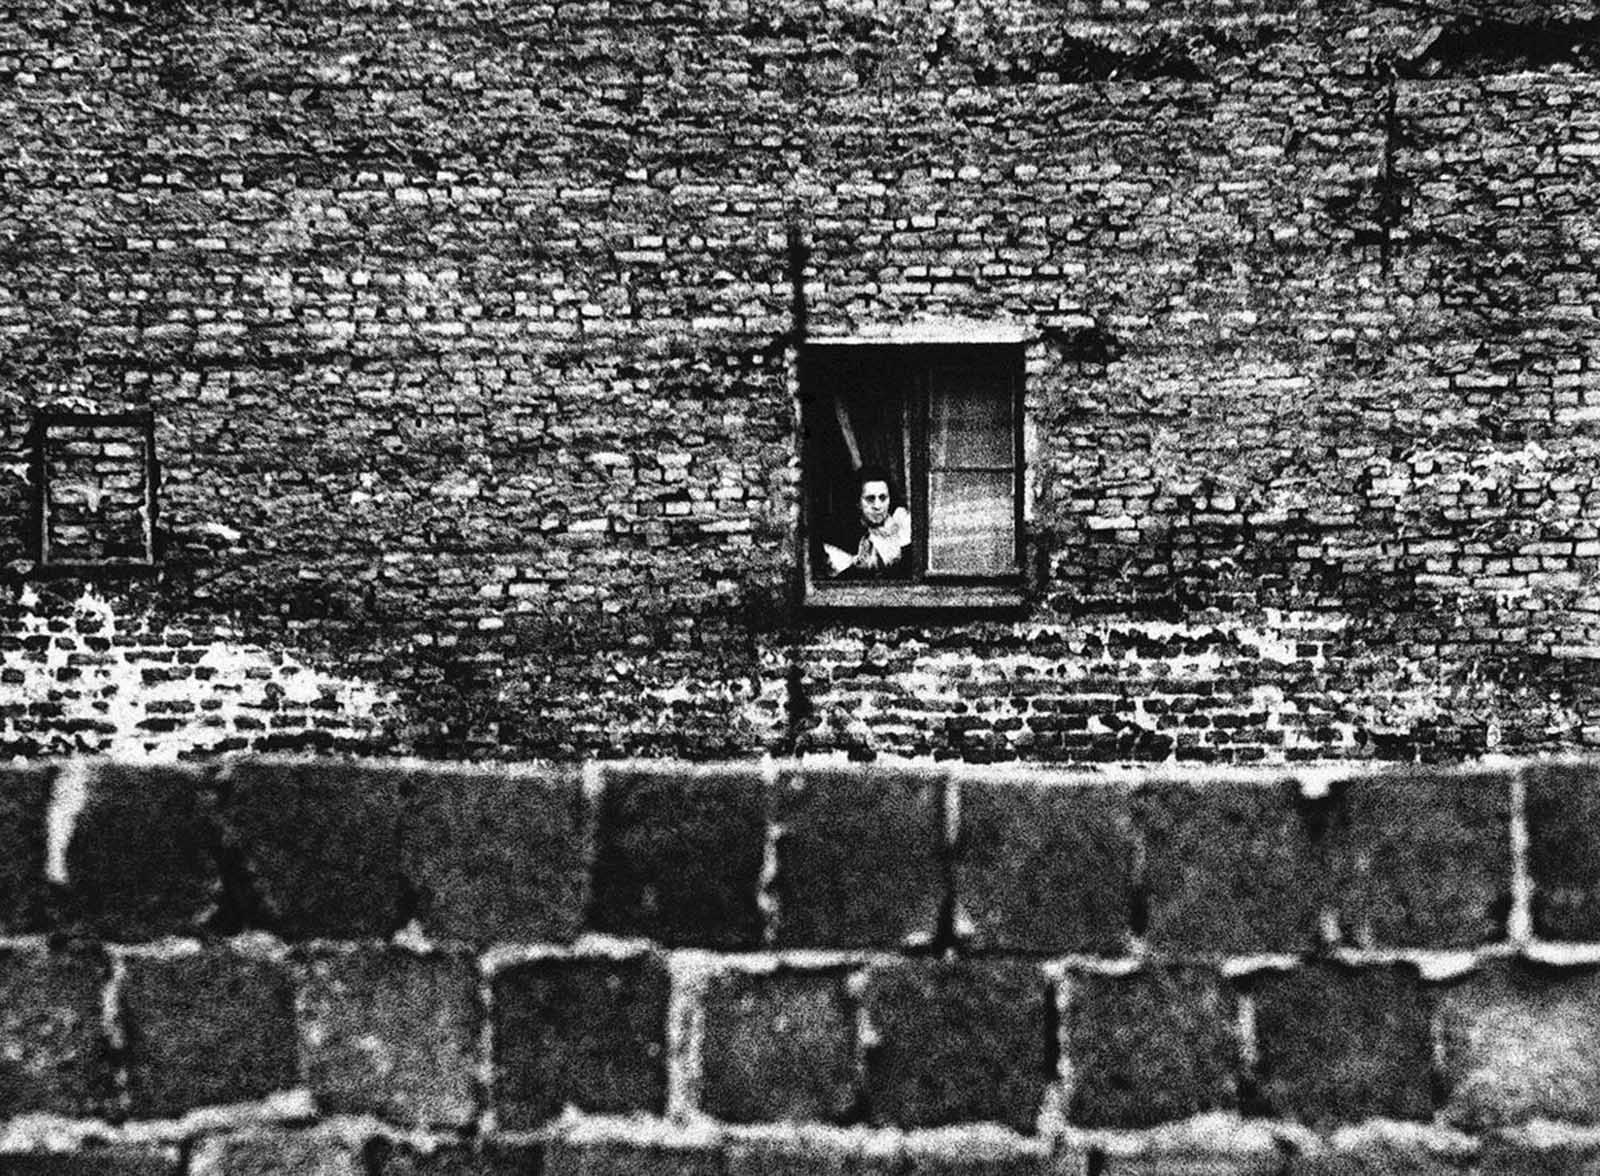 Typical of East Berlin measures to halt the escape of refugees to the west are these bricked-up windows in an apartment house along the city's dividing line October 6, 1961. The house, on the South side of Bernauerstrasse, is in East Berlin.